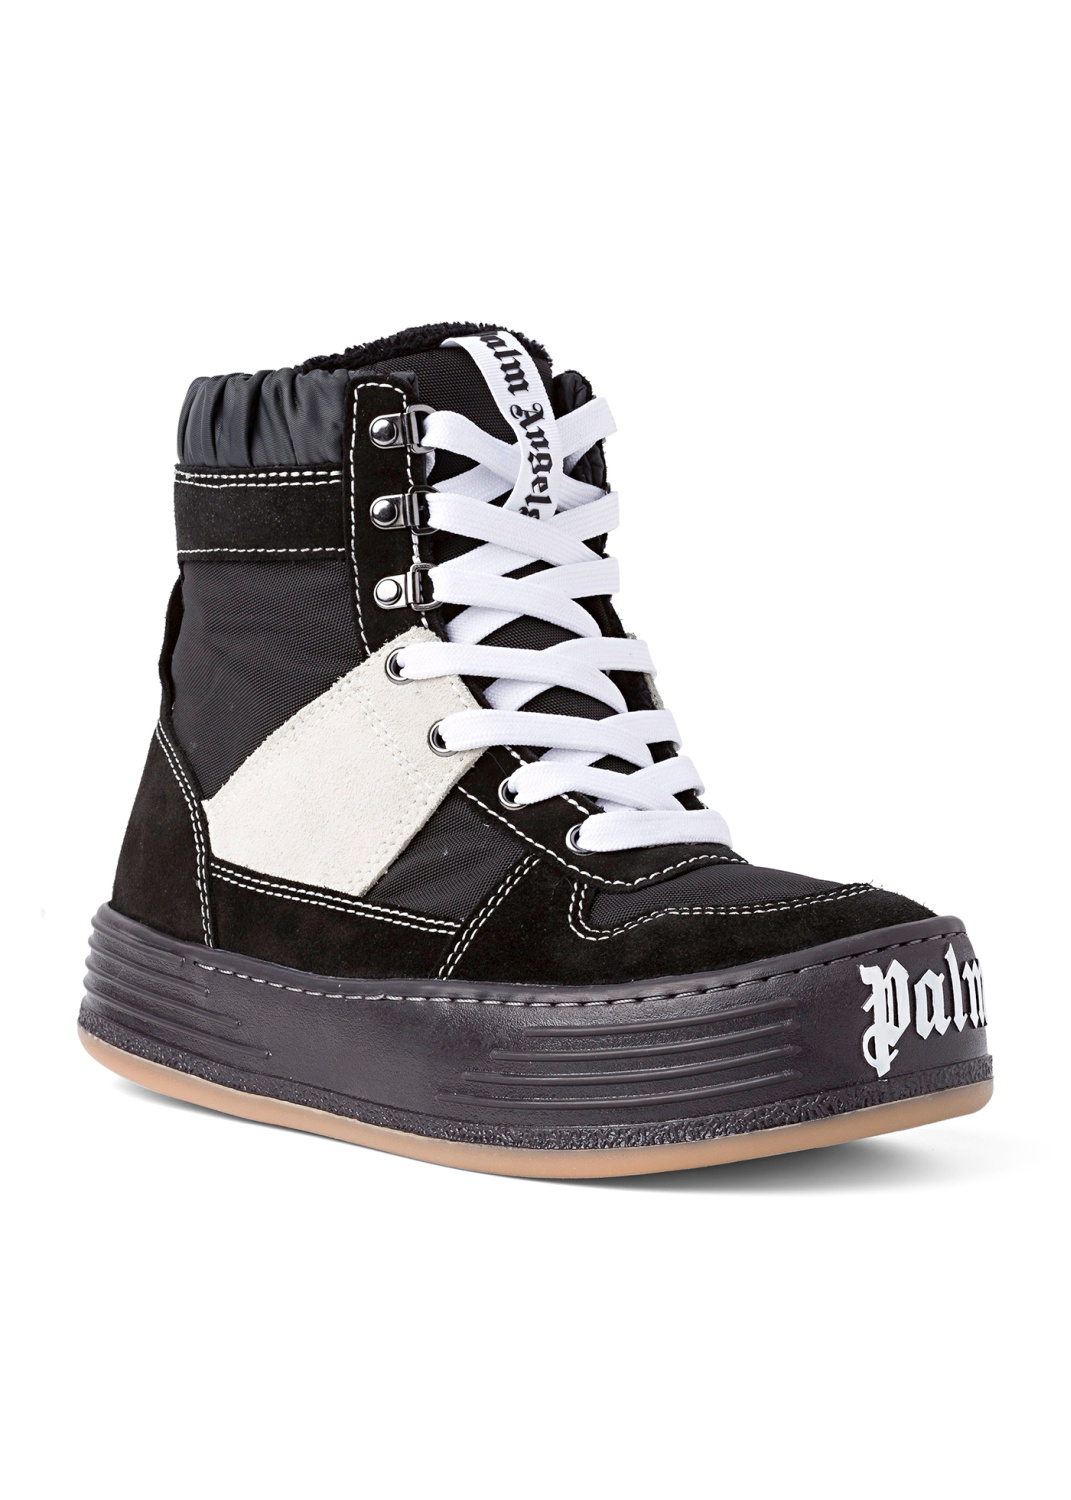 NYLON SUEDE SNOW HIGH TOP  BLACK WHITE image number 1